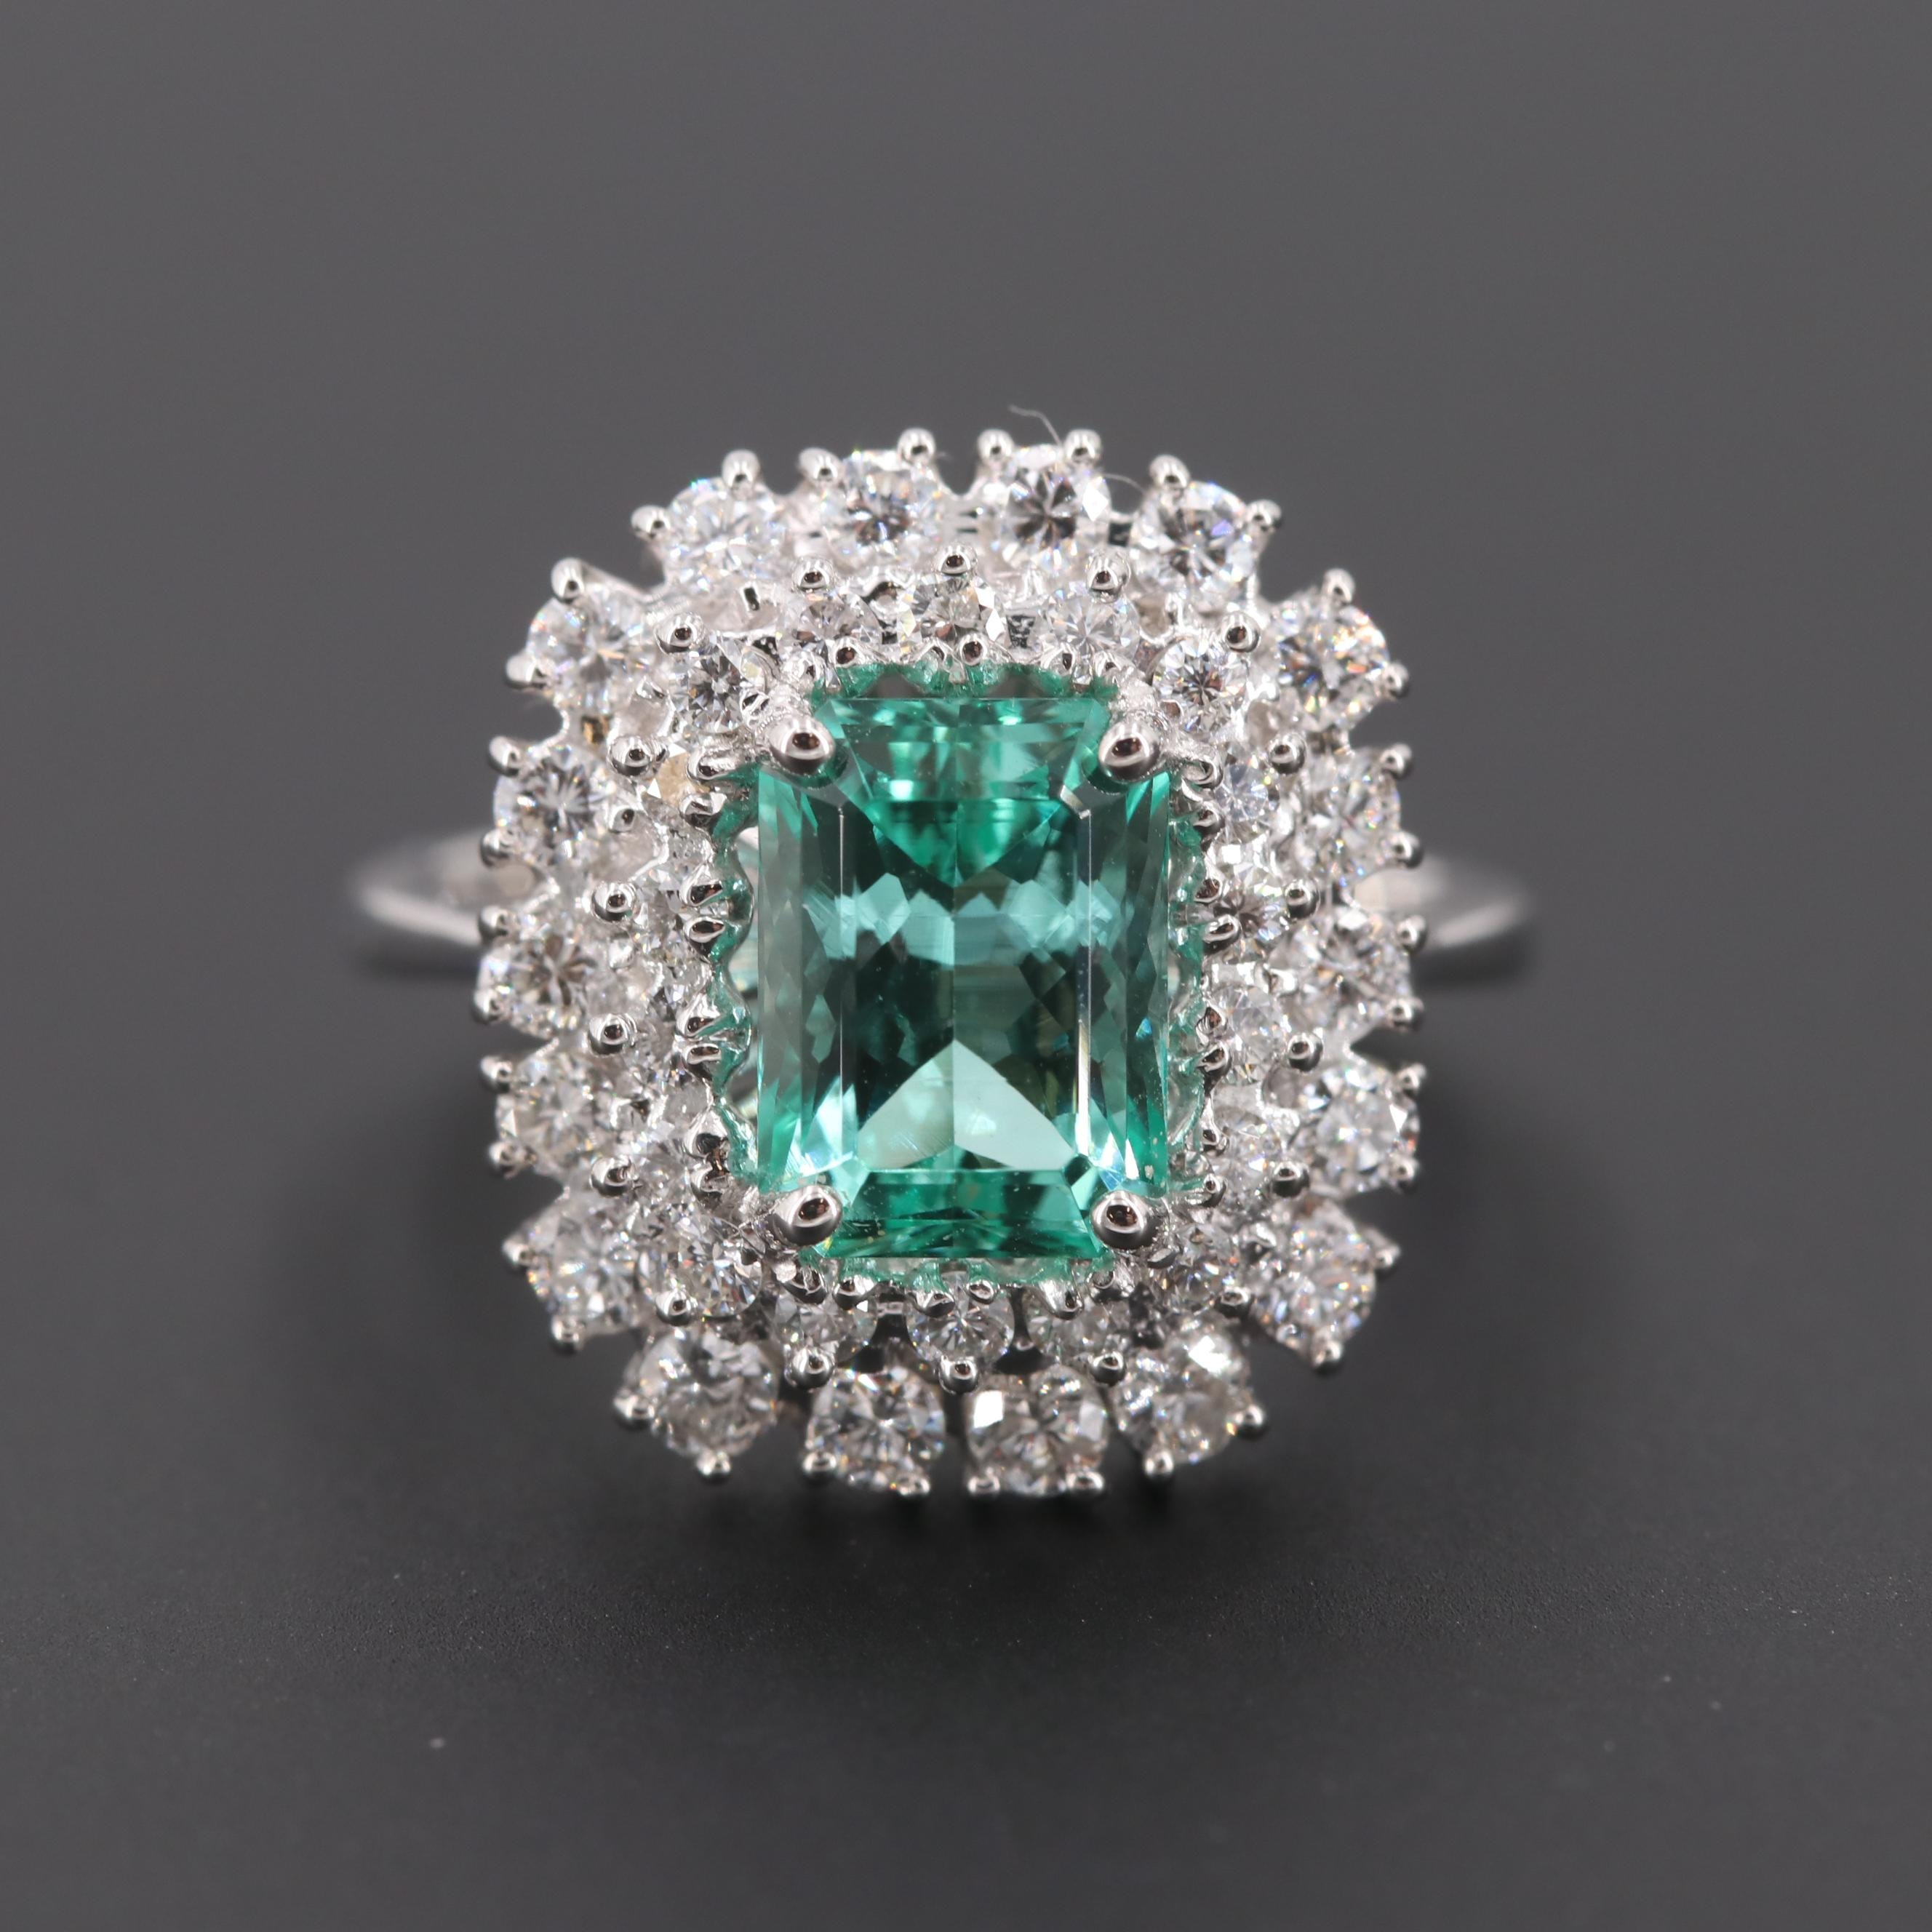 18K White Gold 1.43 CT Untreated Emerald and Diamond Ring with GIA Report